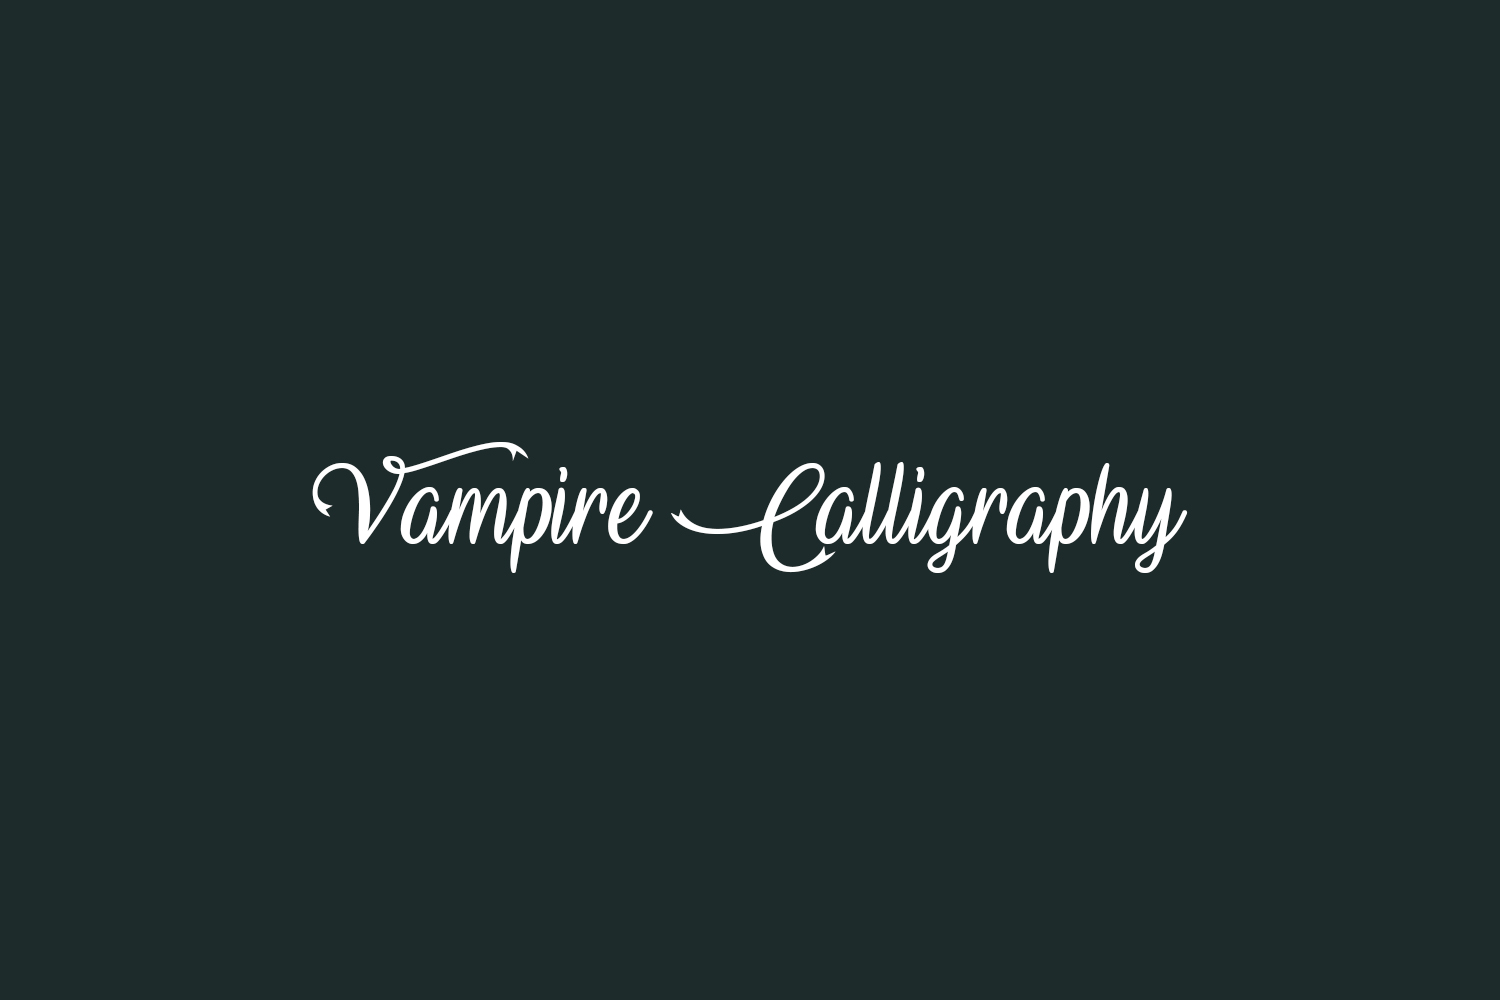 Vampire Calligraphy Free Font